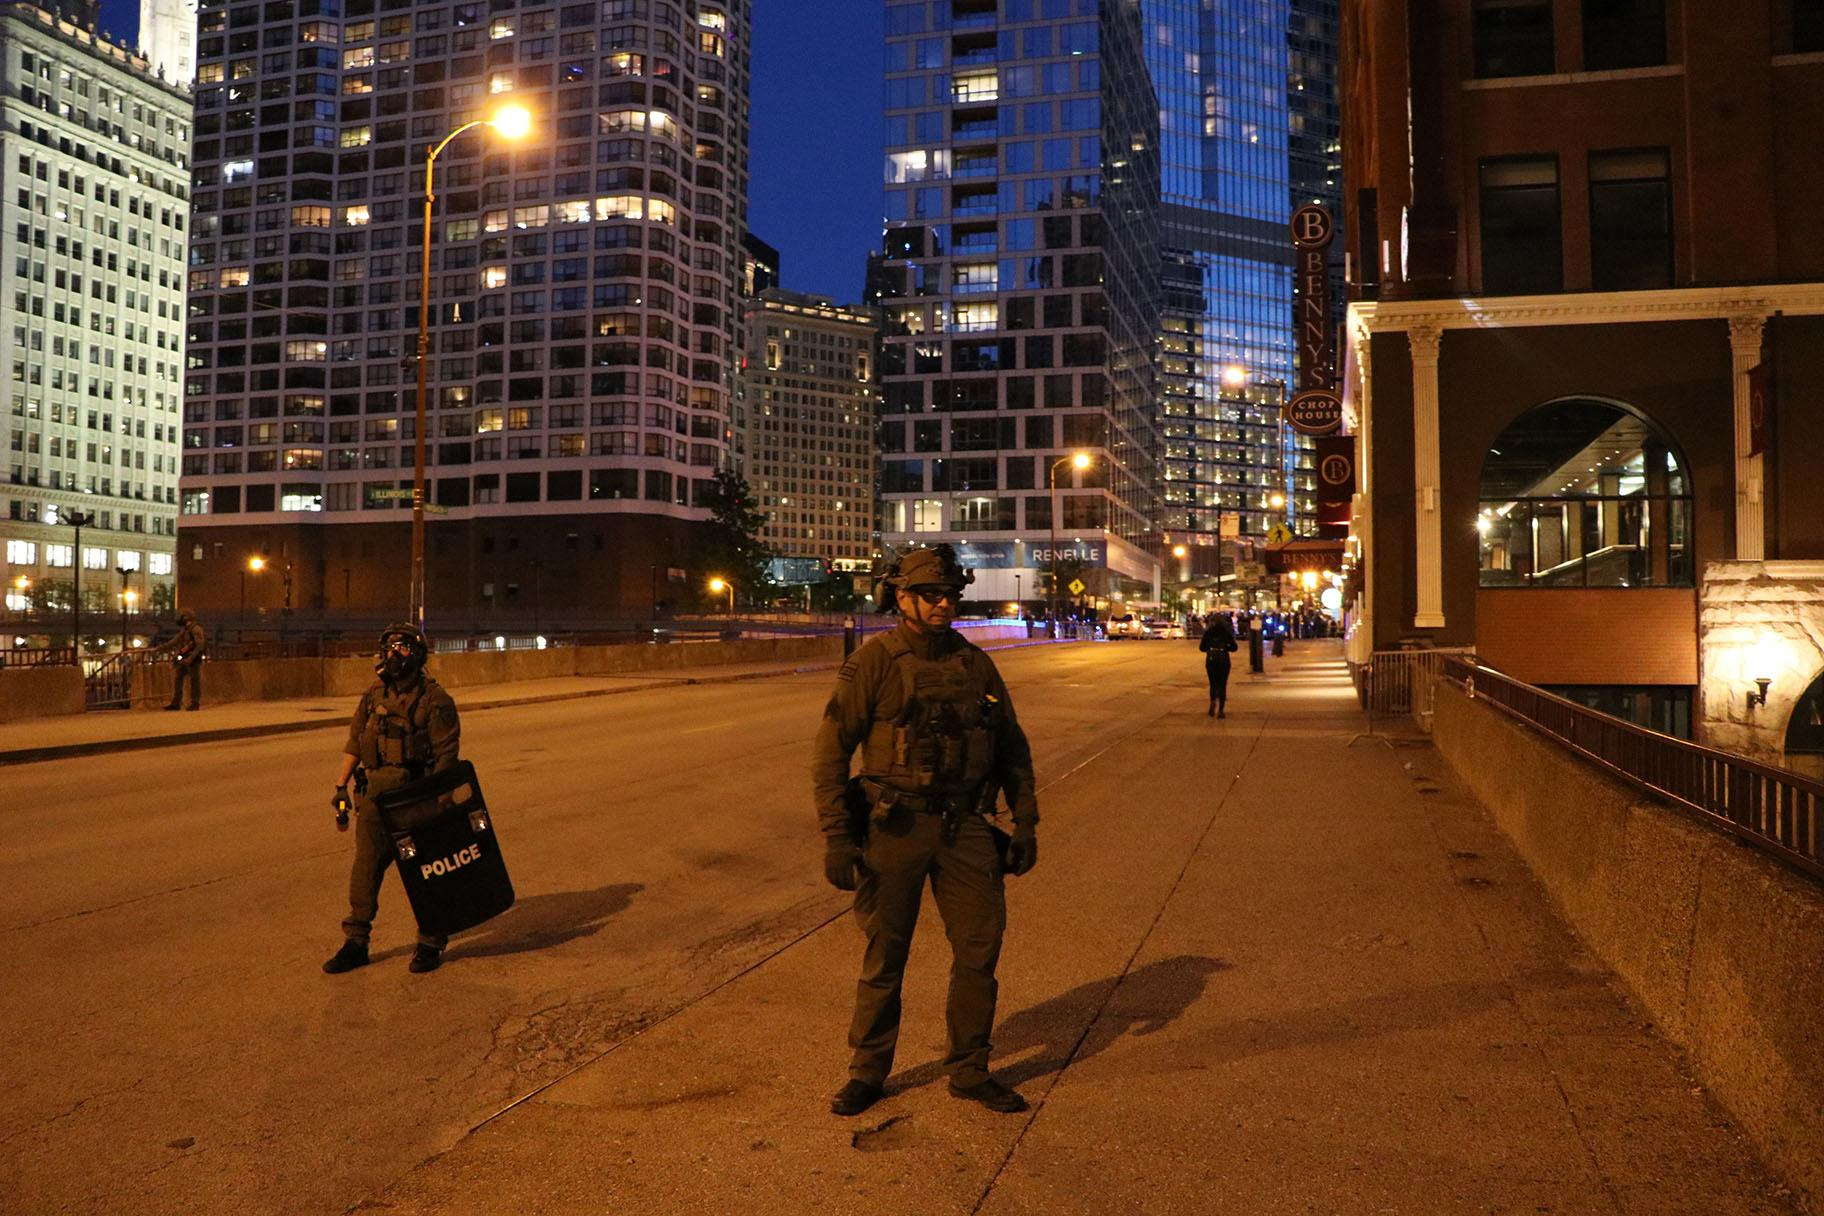 Two members of Chicago Police's SWAT team block people from traveling northward on Wabash Avenue after the 9 p.m. curfew. Exceptions were made for people who live in the area. (Evan Garcia / WTTW News)